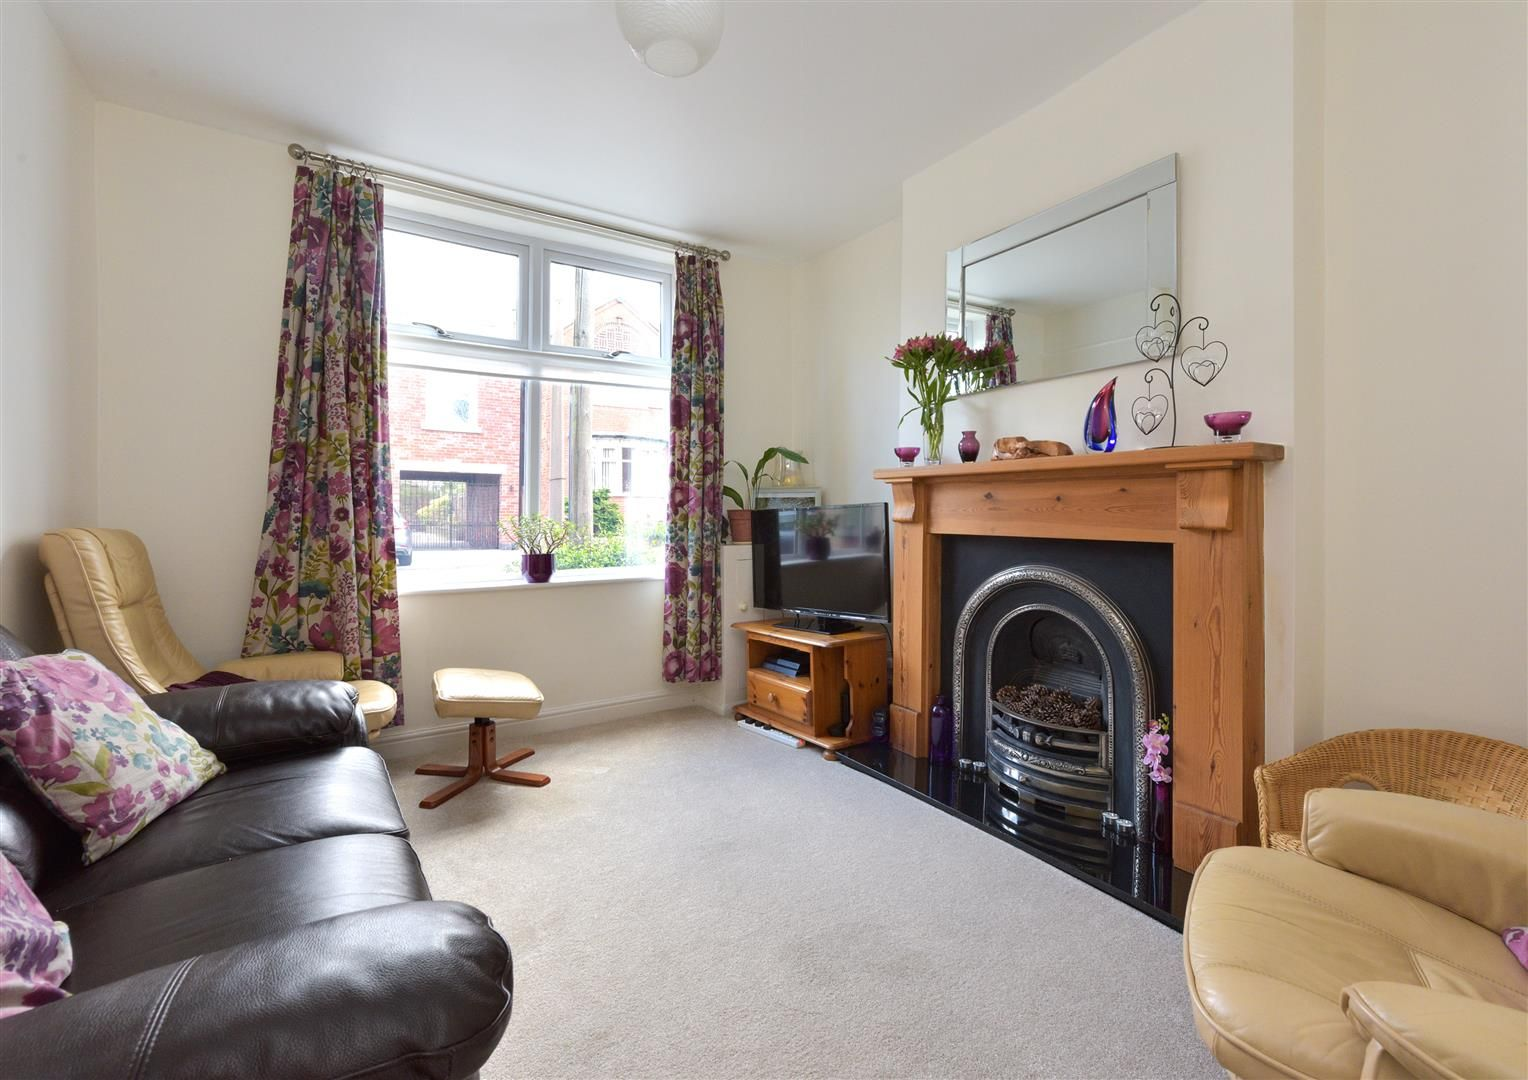 3 bed end-of-terrace for sale  - Property Image 4